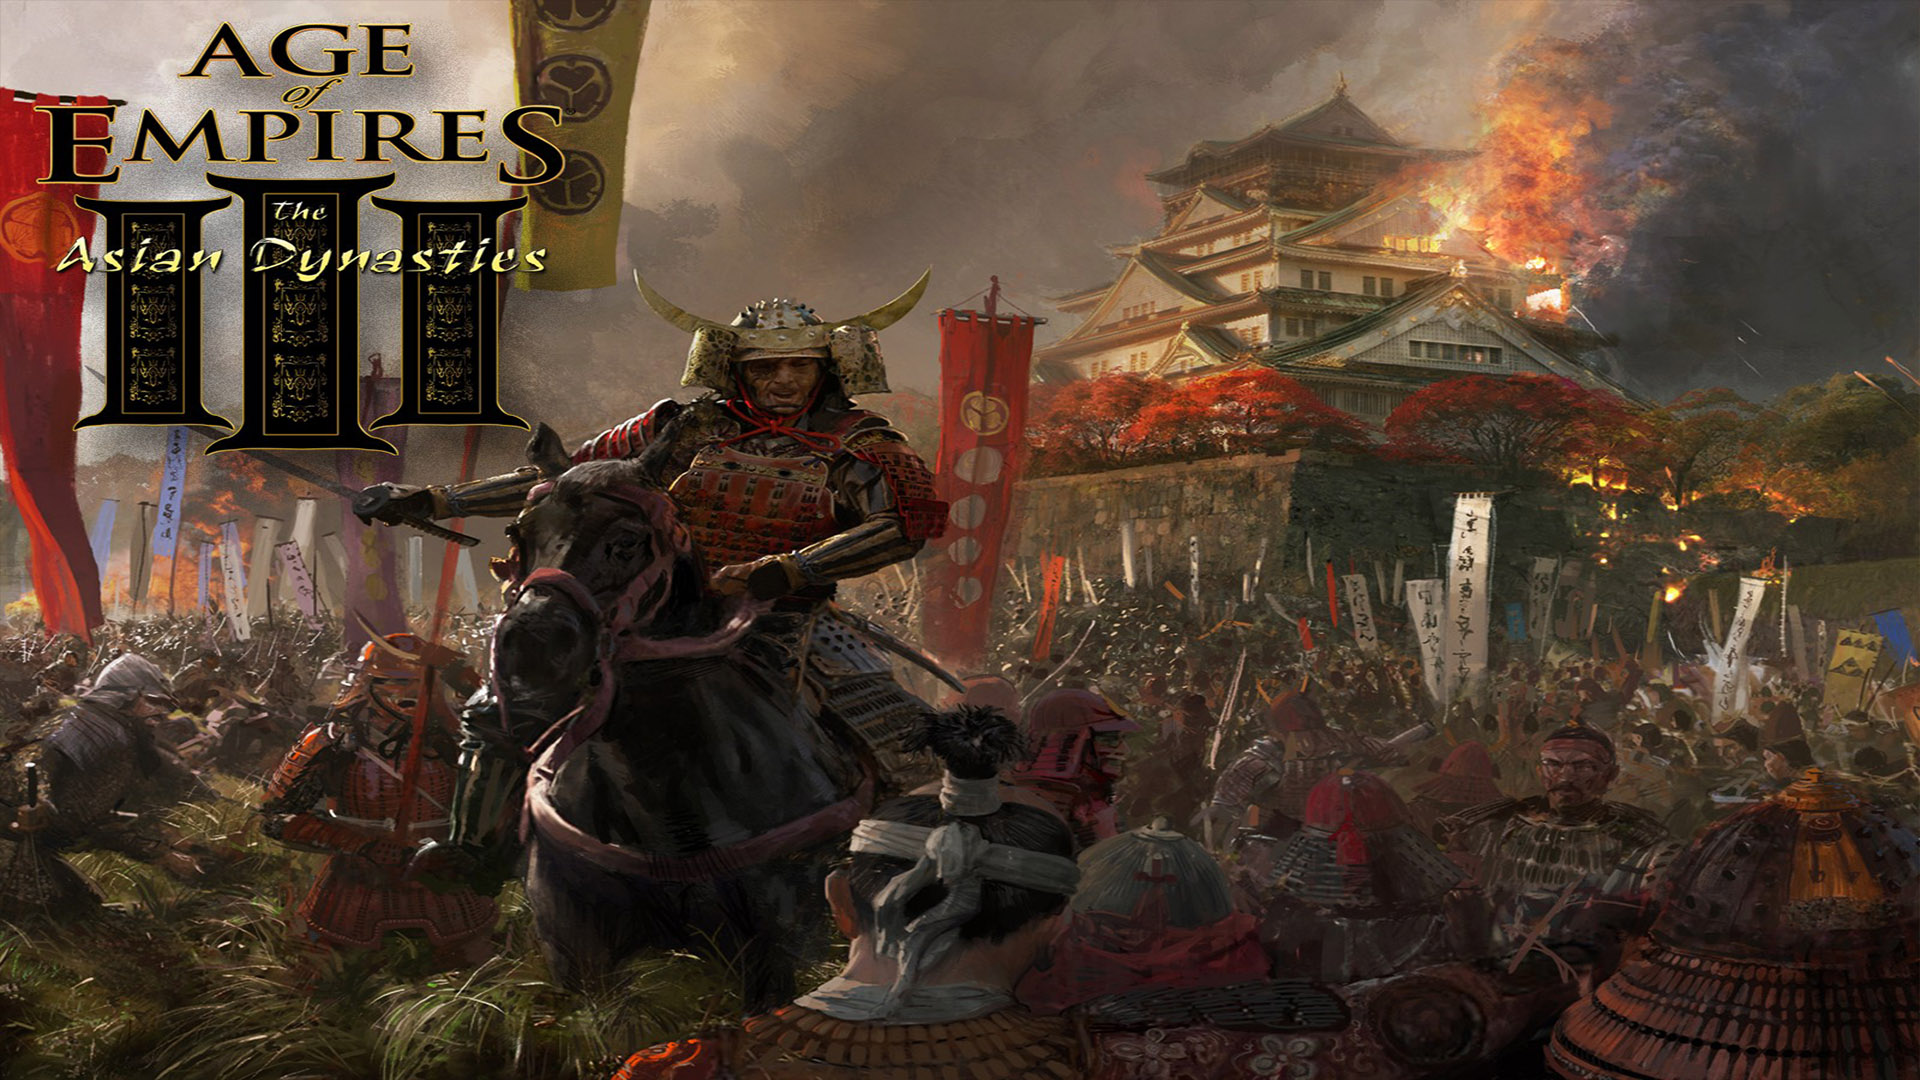 Amazoncom: Age Of Empires III: The Asian Dynasties